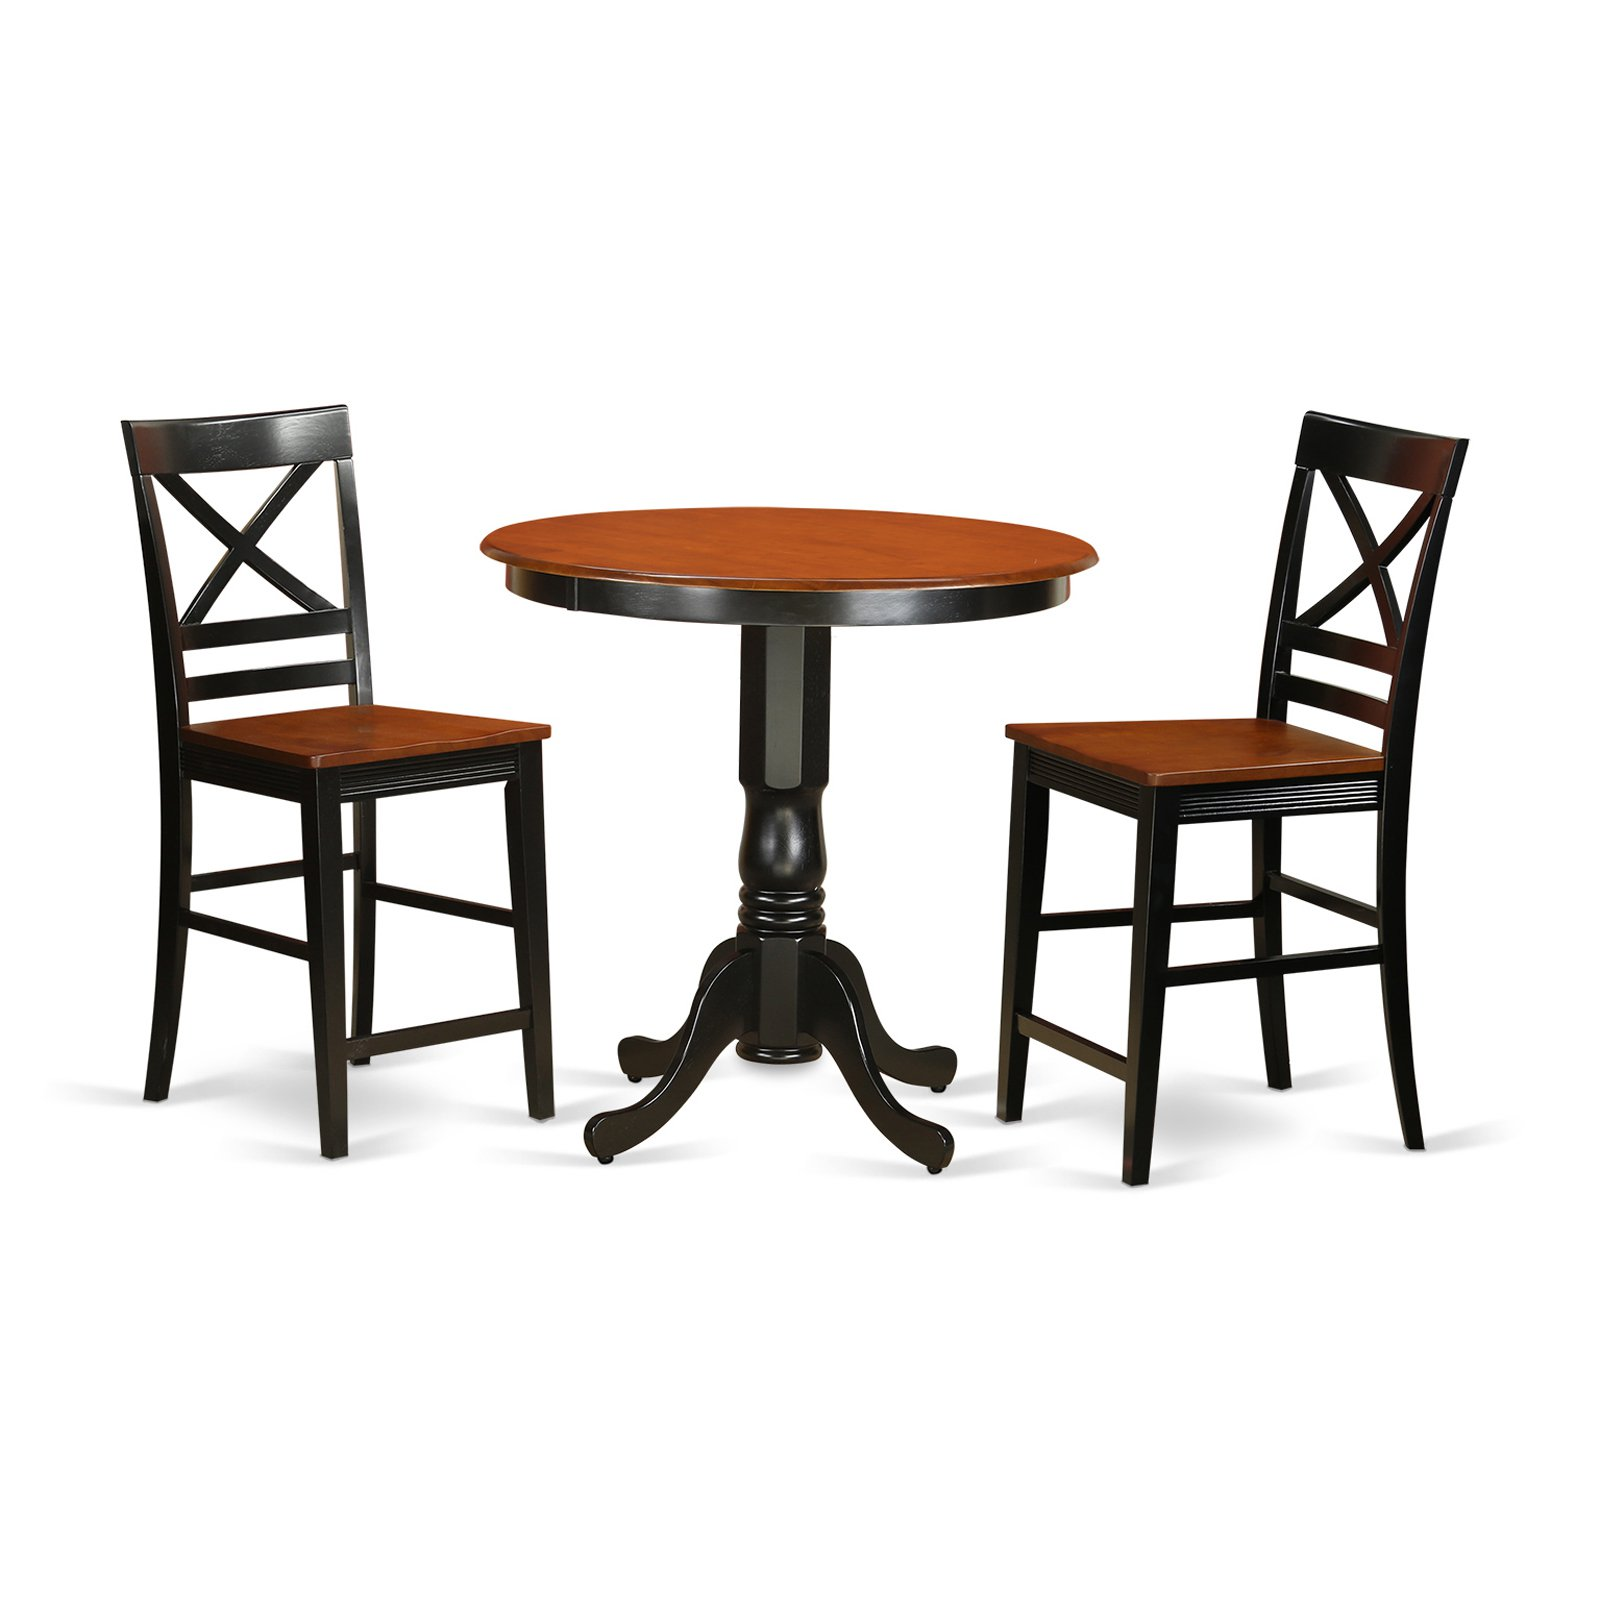 East West Furniture Jackson 3 Piece Cross-And-Ladder Dining Table Set